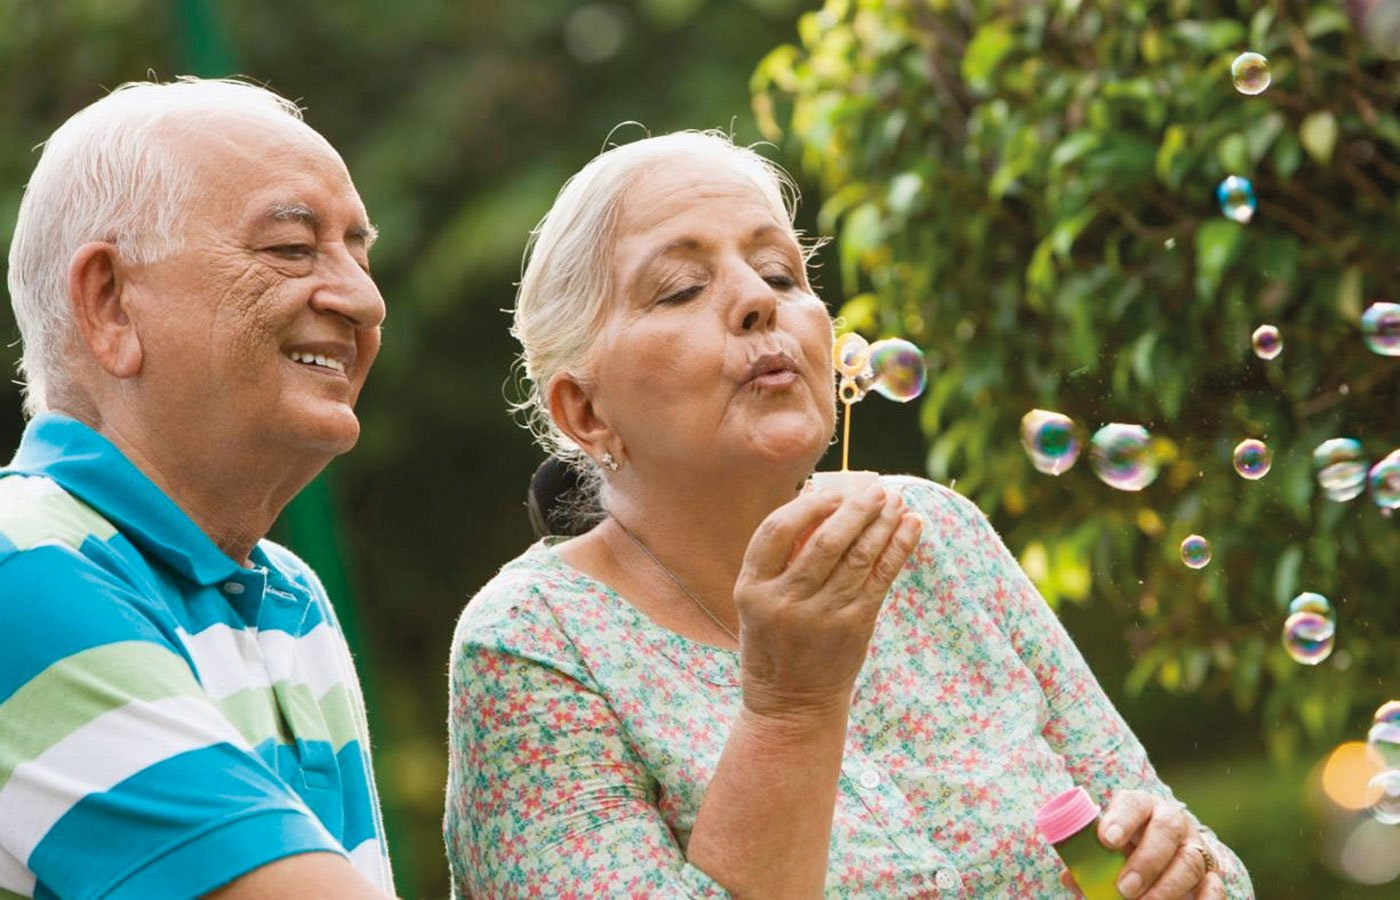 things adults can do for senior citizens